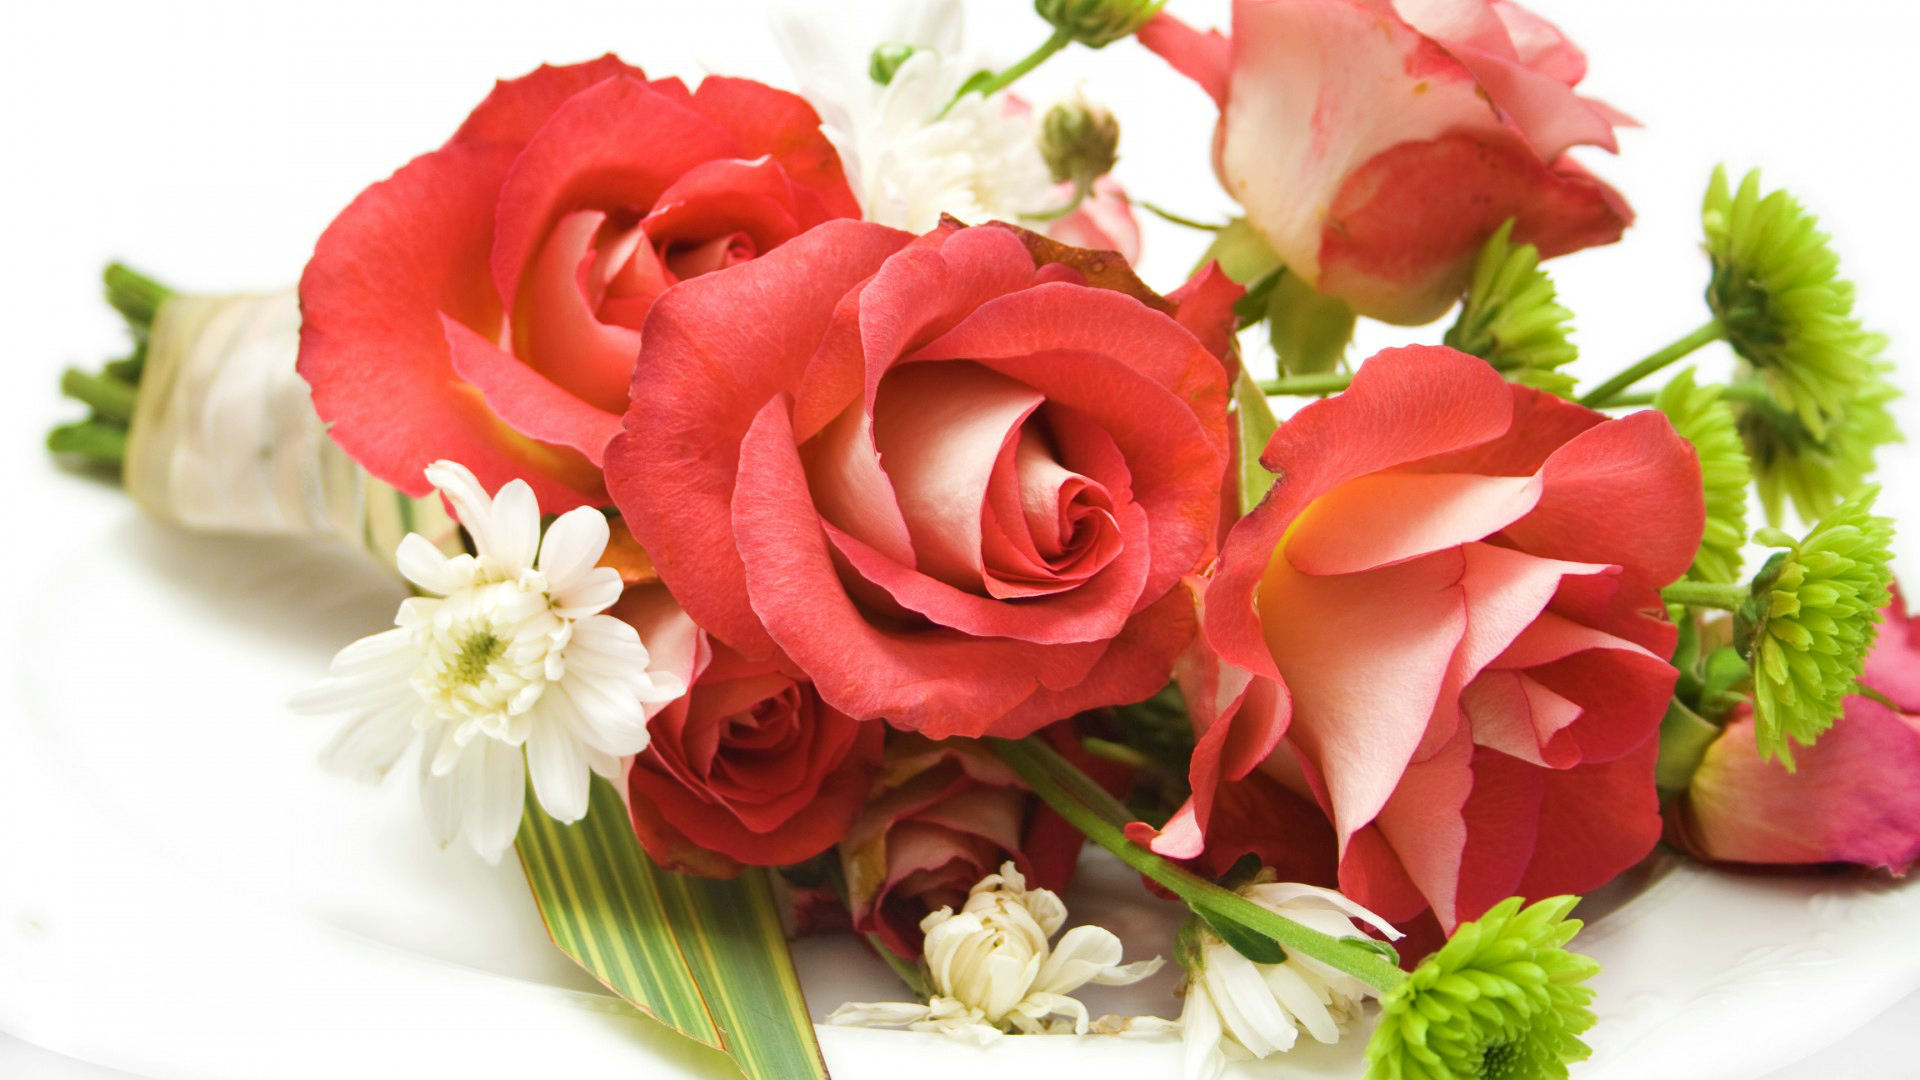 Flowers Images Roses Hd Wallpaper And Background Photos 33460137